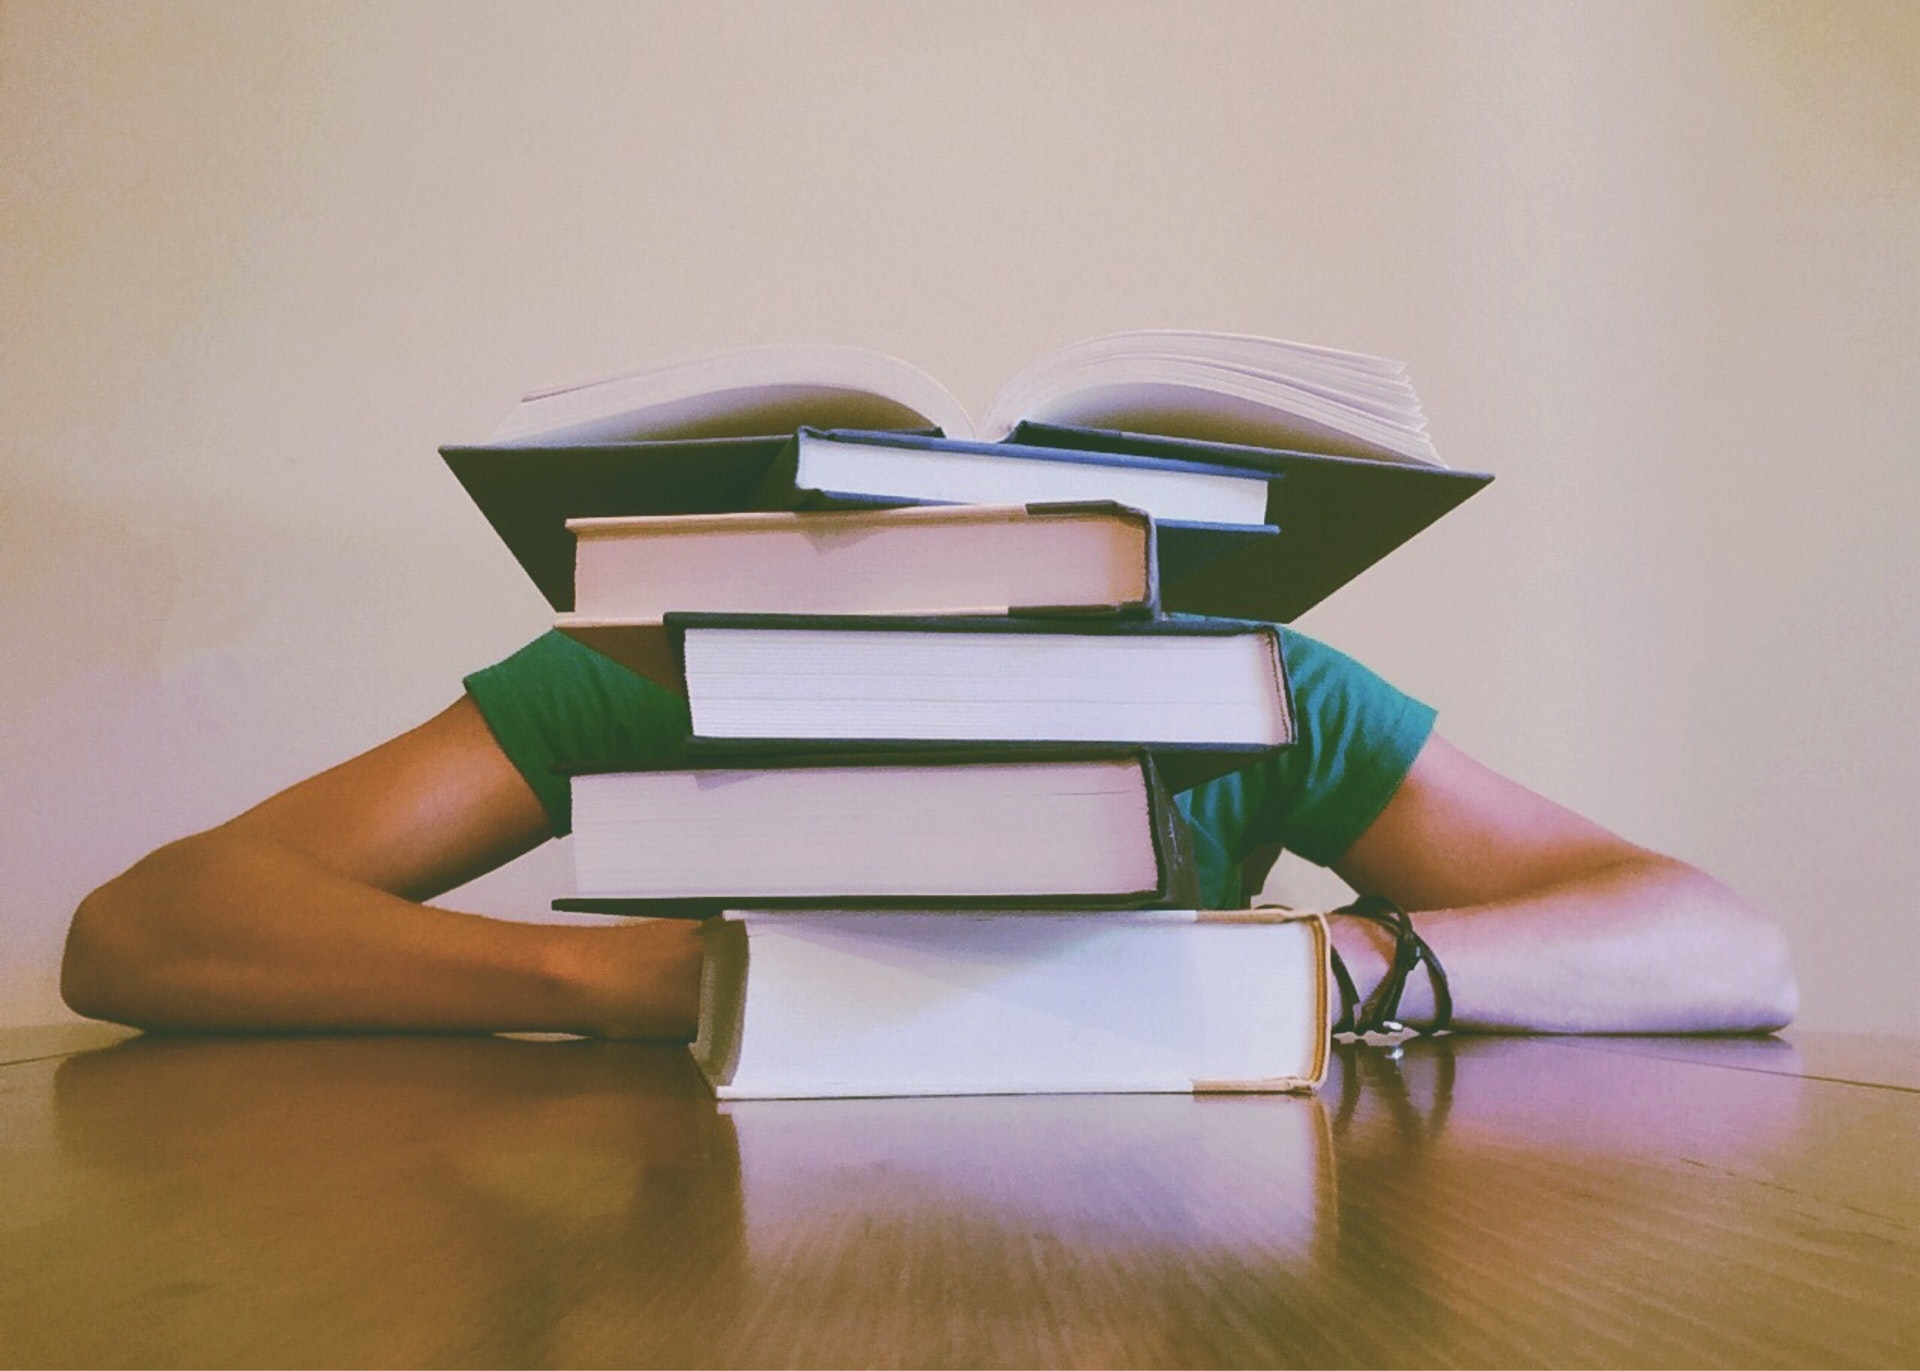 Real estate school student sitting in front of stack of textbooks